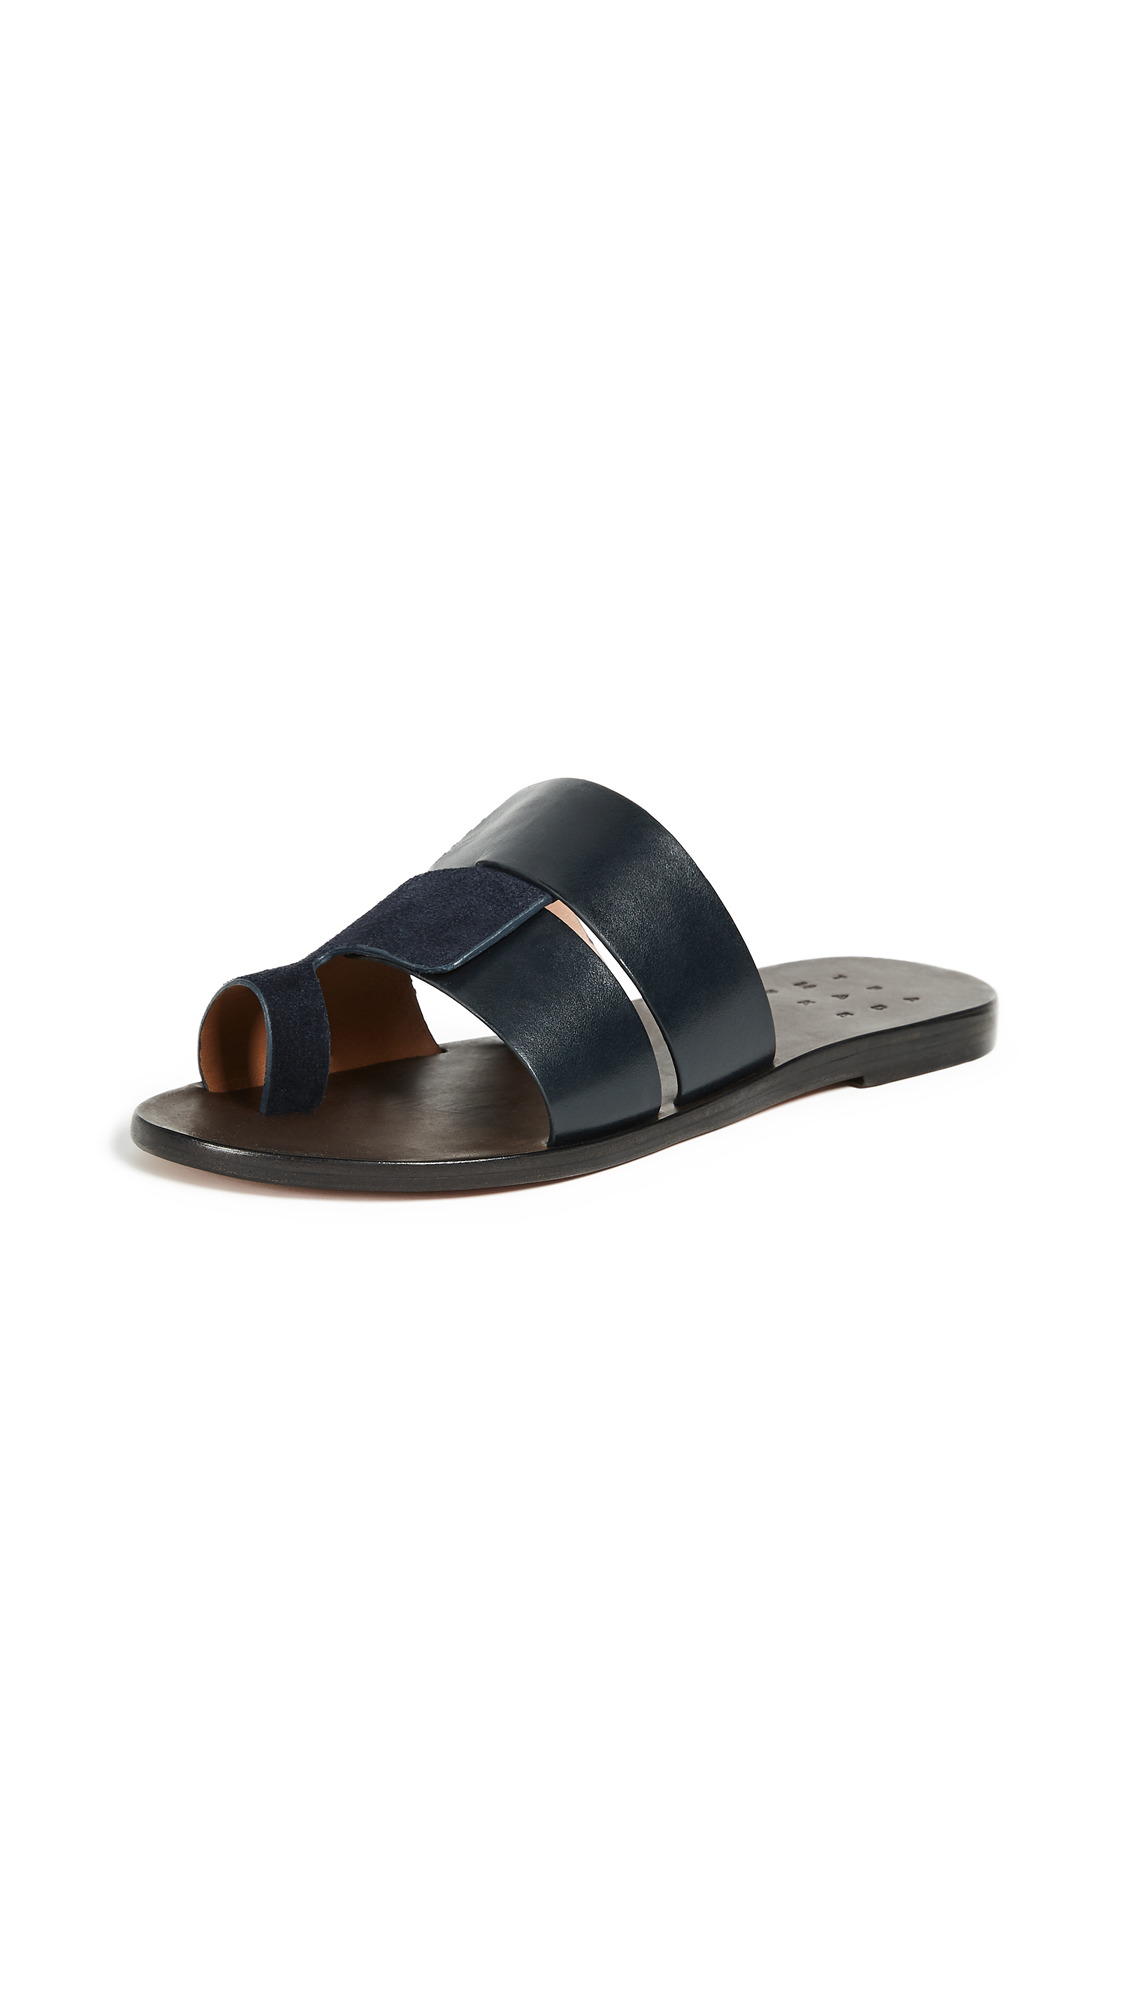 Trademark Cadiz Sandals - Navy